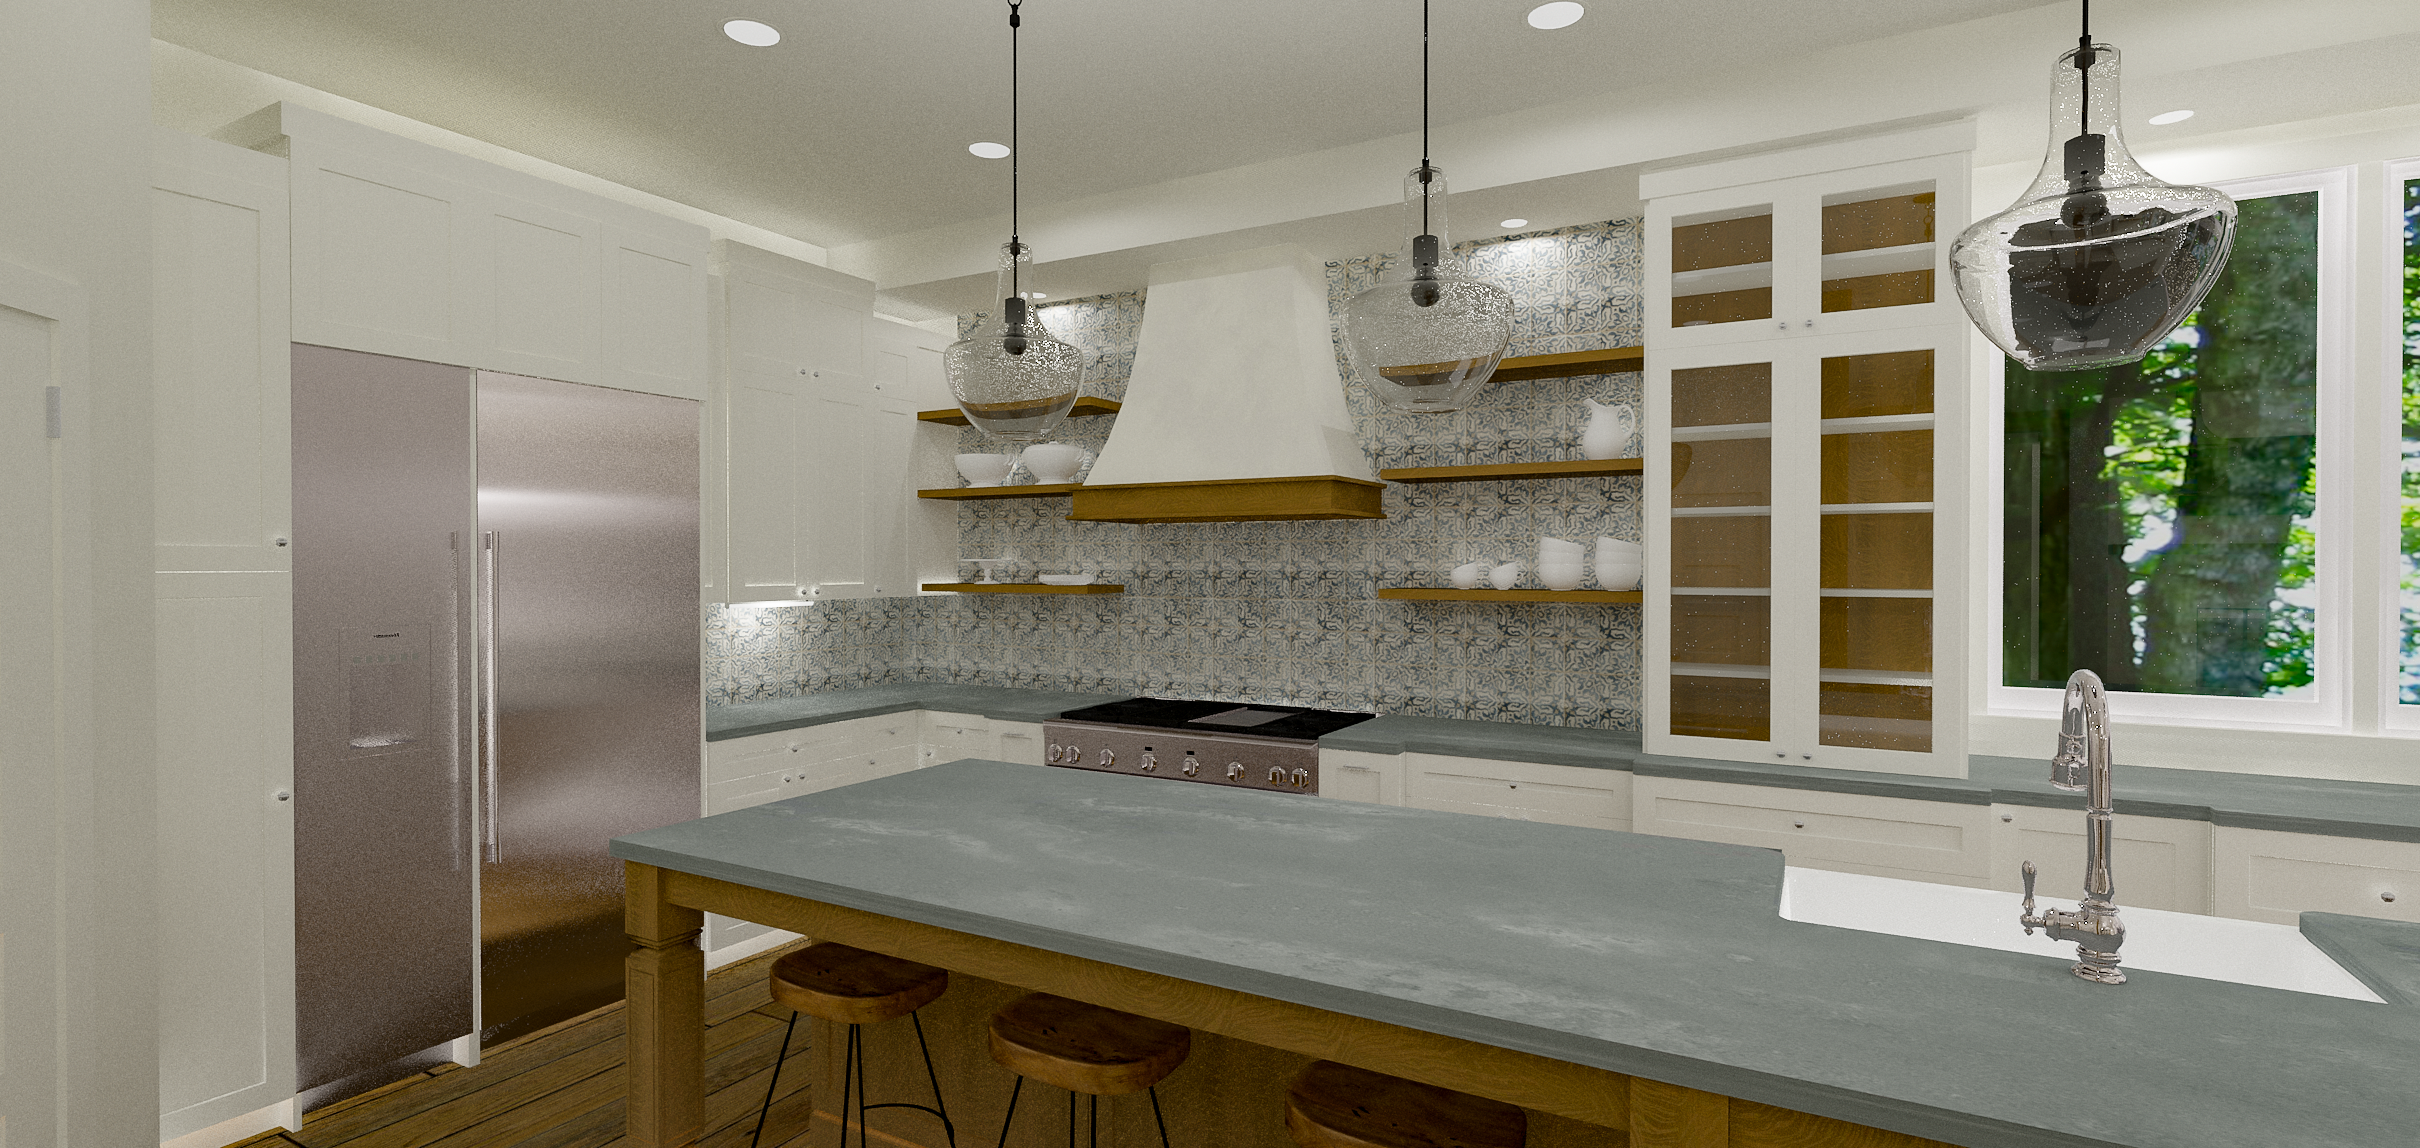 Austin Farmhouse Style Kitchen Rendering | Designed and Rendered by Kelly Fridline Design | Chief Architect X10